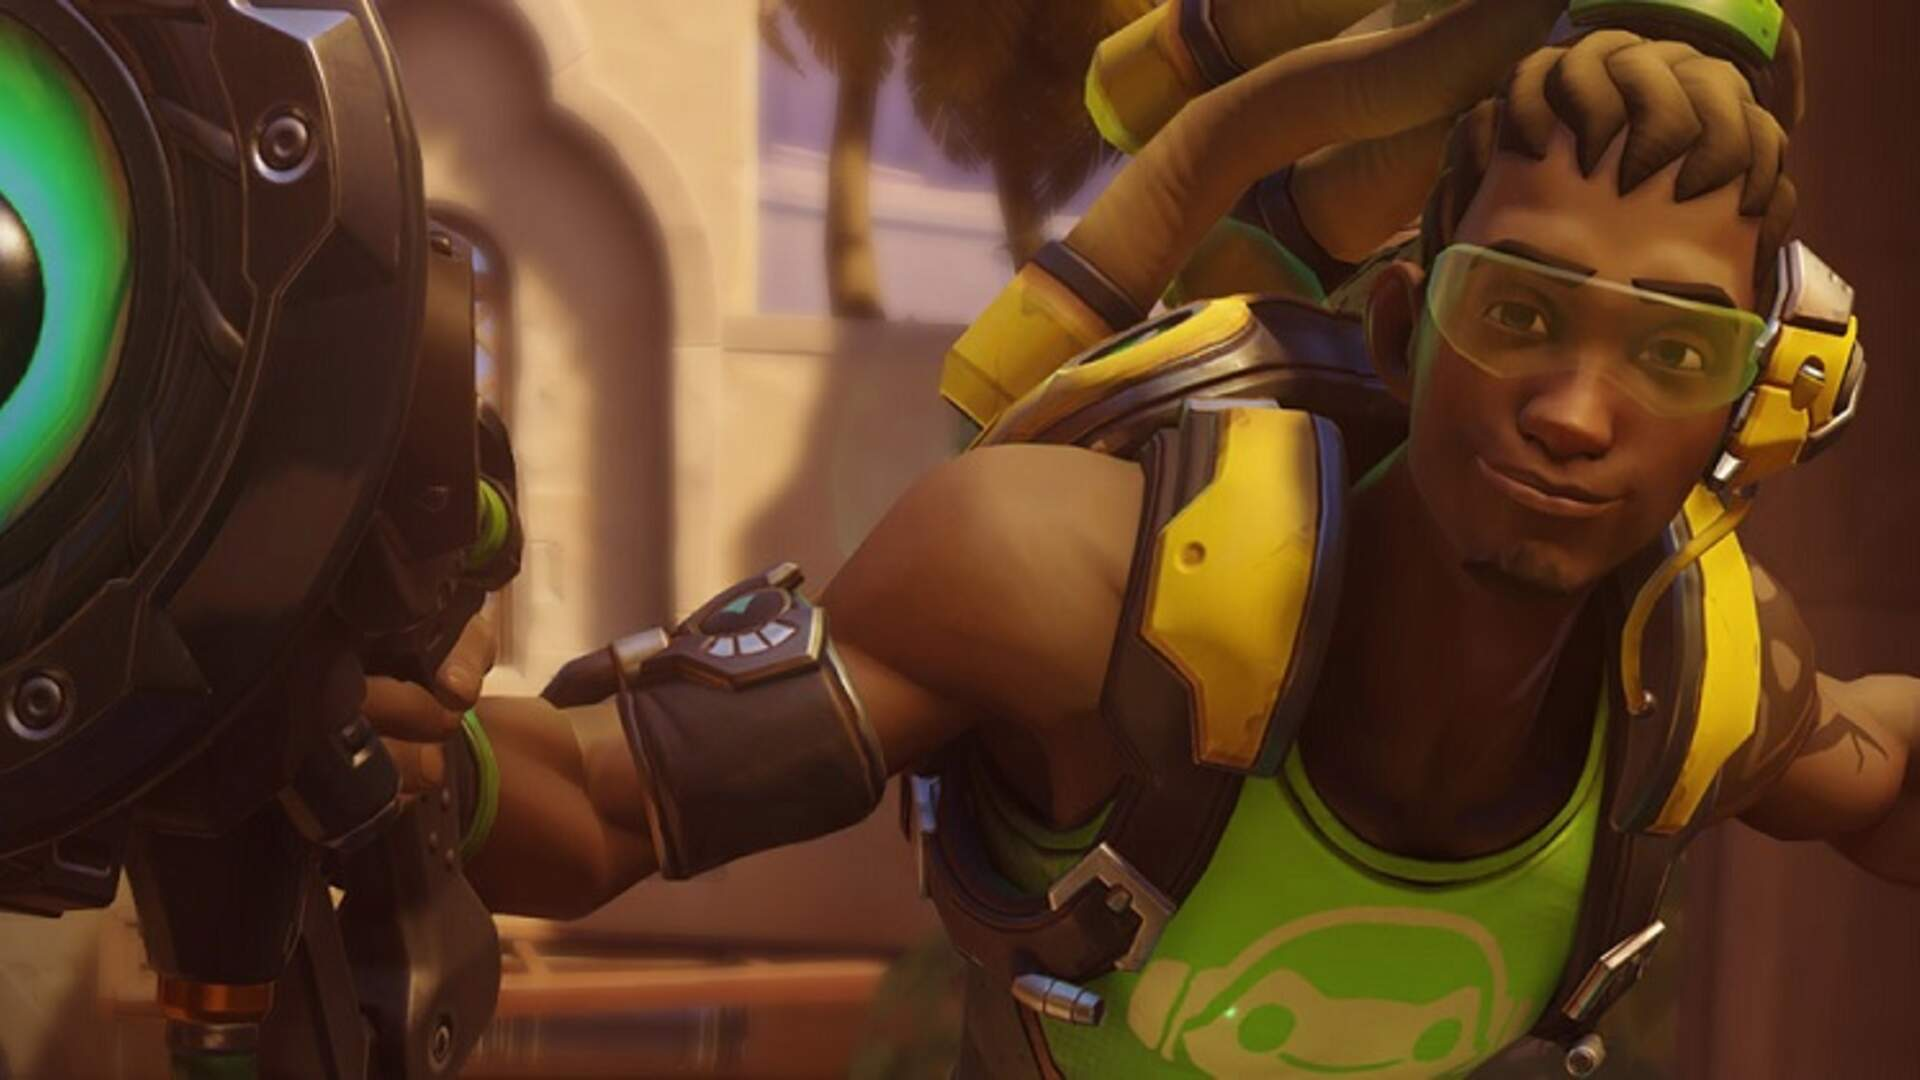 Overwatch - The Best Heroes in Each Class - Best Offense, Defense, Tank, Support Heroes